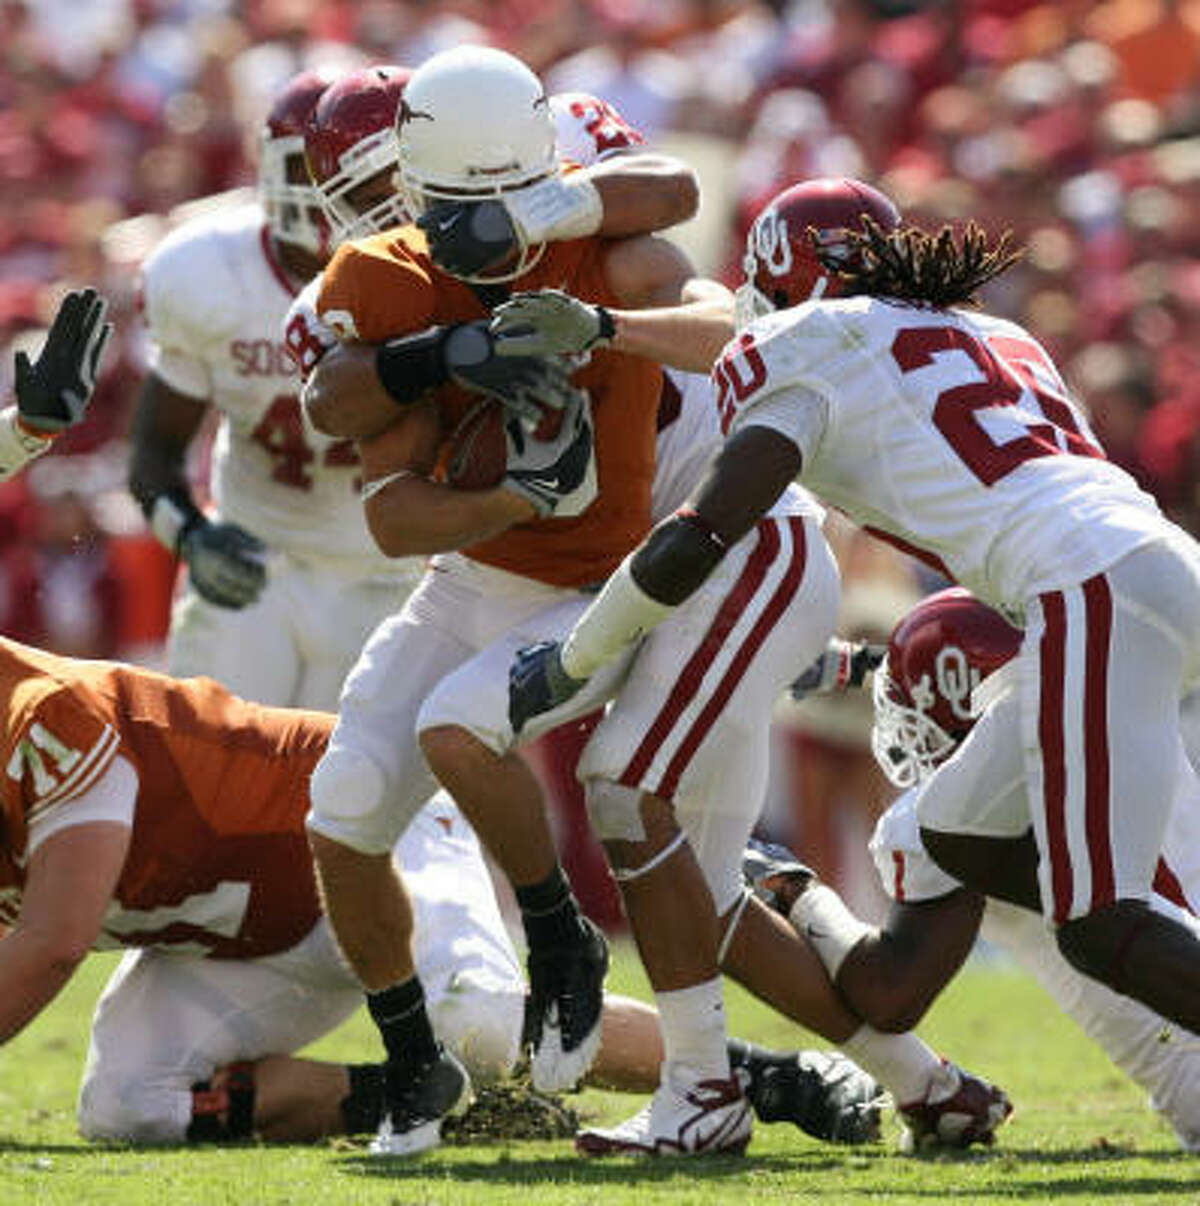 Texas wide receiver Jordan Shipley fights for yardage as Oklahoma defenders bring him down. Shipley was held to 22 yards on four catches.